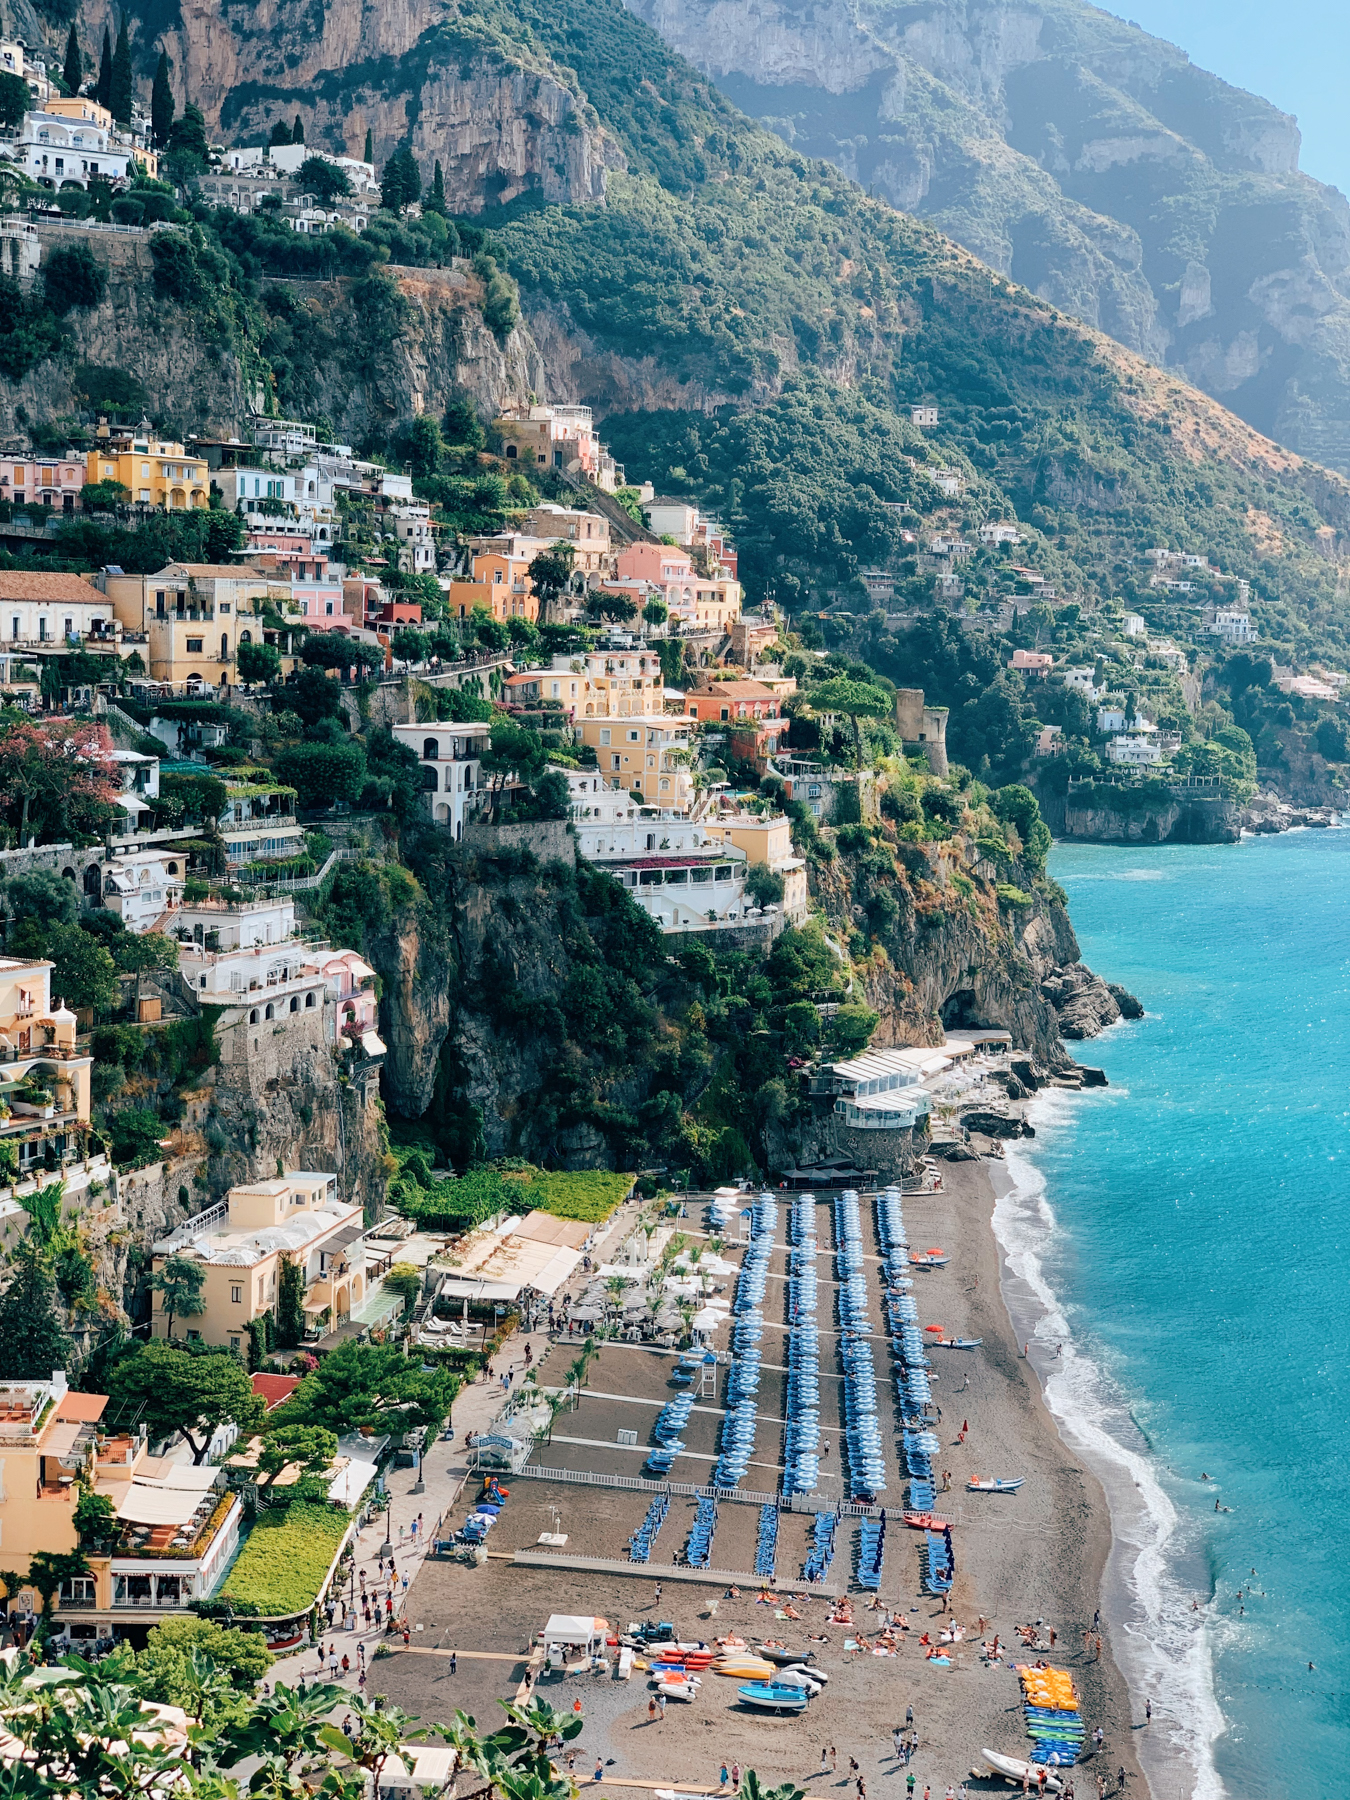 A view of the beach from Cafe Positano